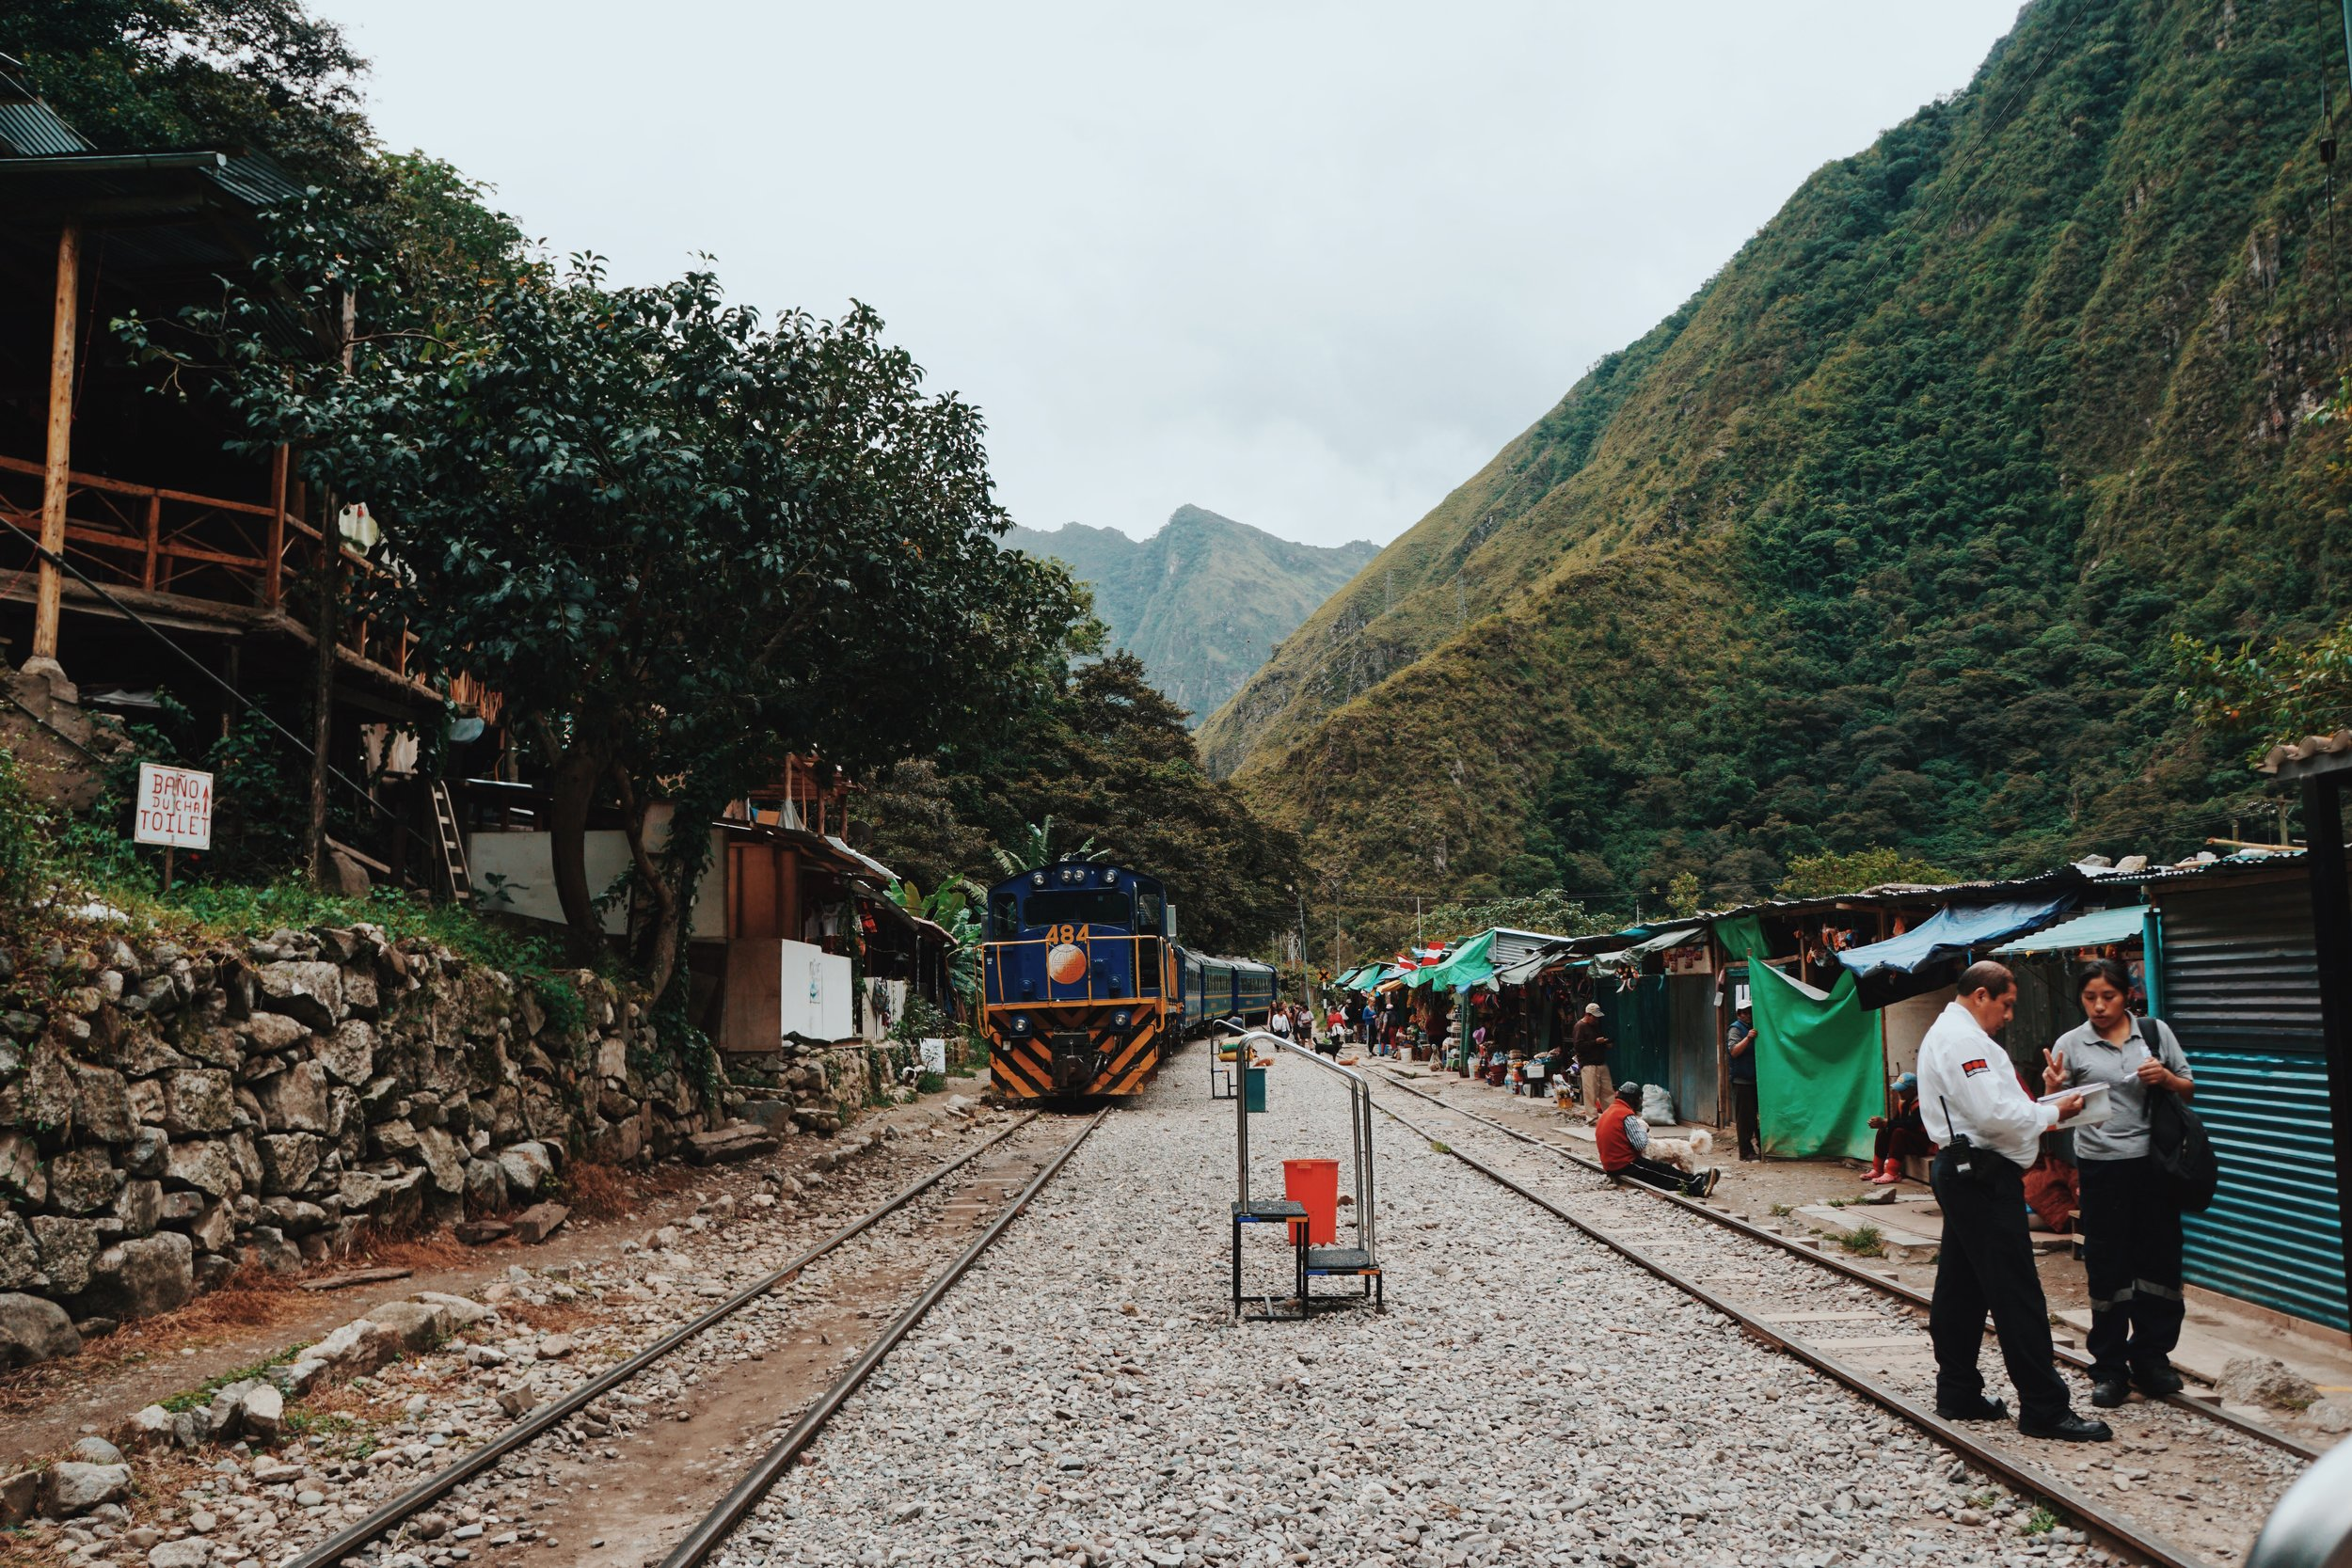 Hidroelectrica Train Station: The start of the (very long) walk along the train tracks to Aguas Calientes.